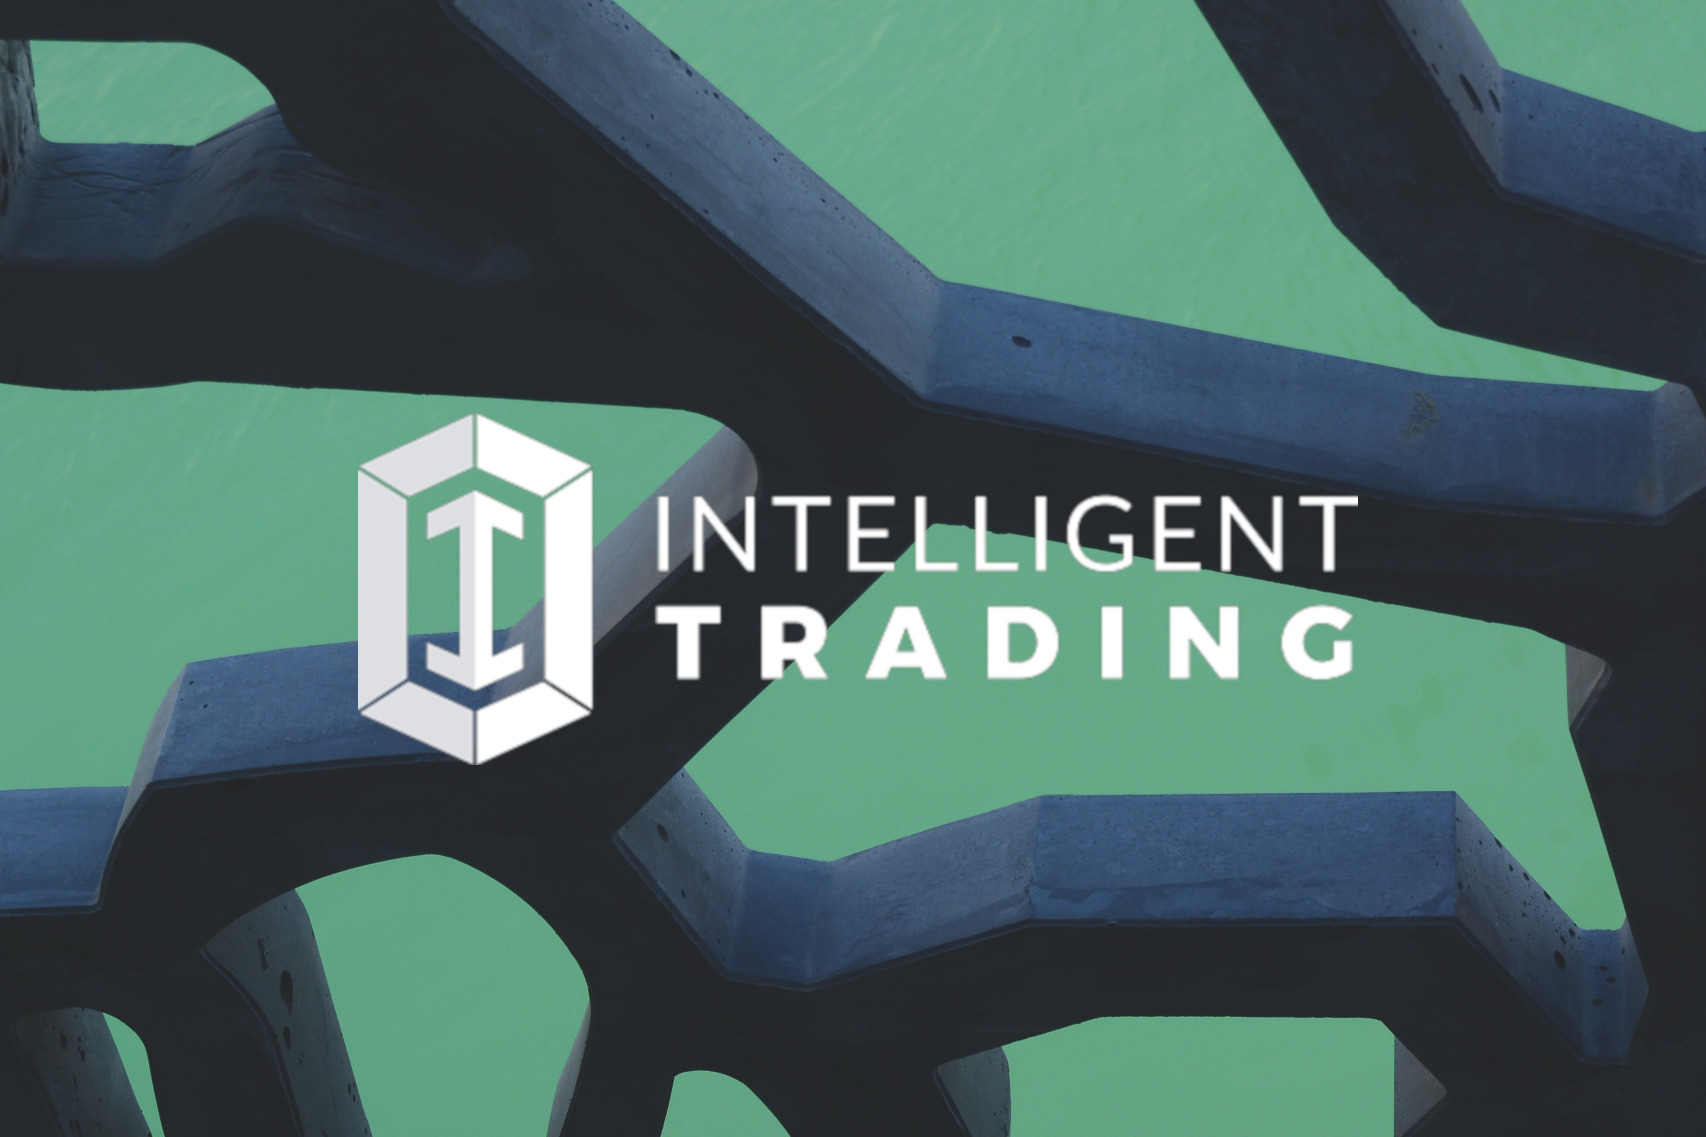 Intelligent Trading Foundation - Actionable Cryptocurrency Investing Insights